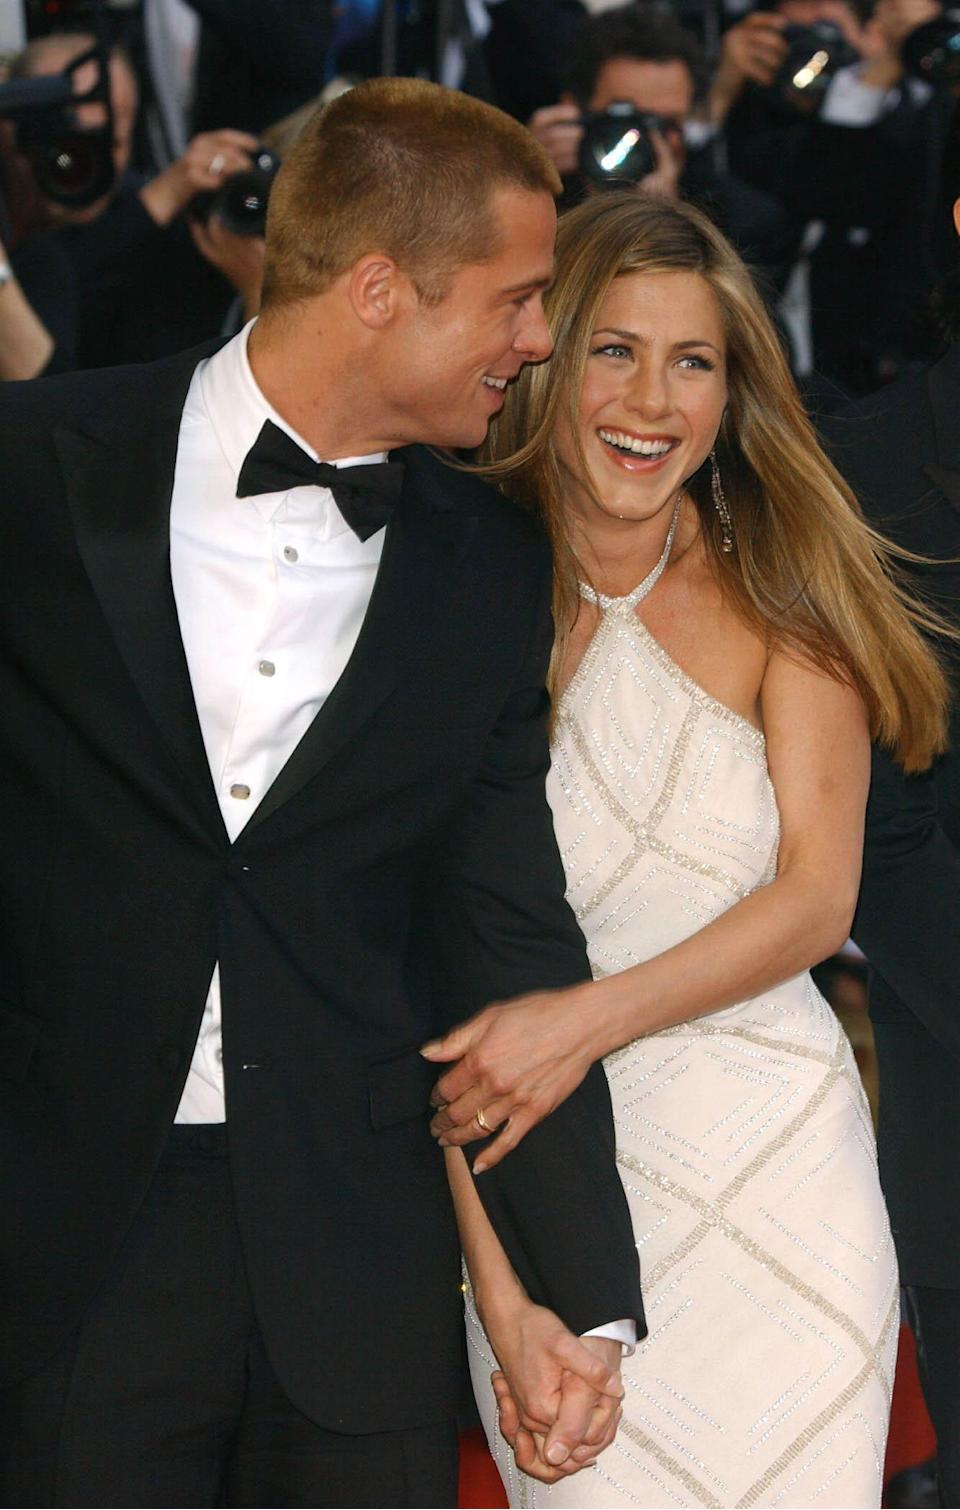 Star of the film Brad Pitt and his wife Jennifer Aniston arrive for the premiere of Troy, at the Palais de Festival during the 57th Cannes Film Festival in France.   (Photo by Ian West - PA Images/PA Images via Getty Images)